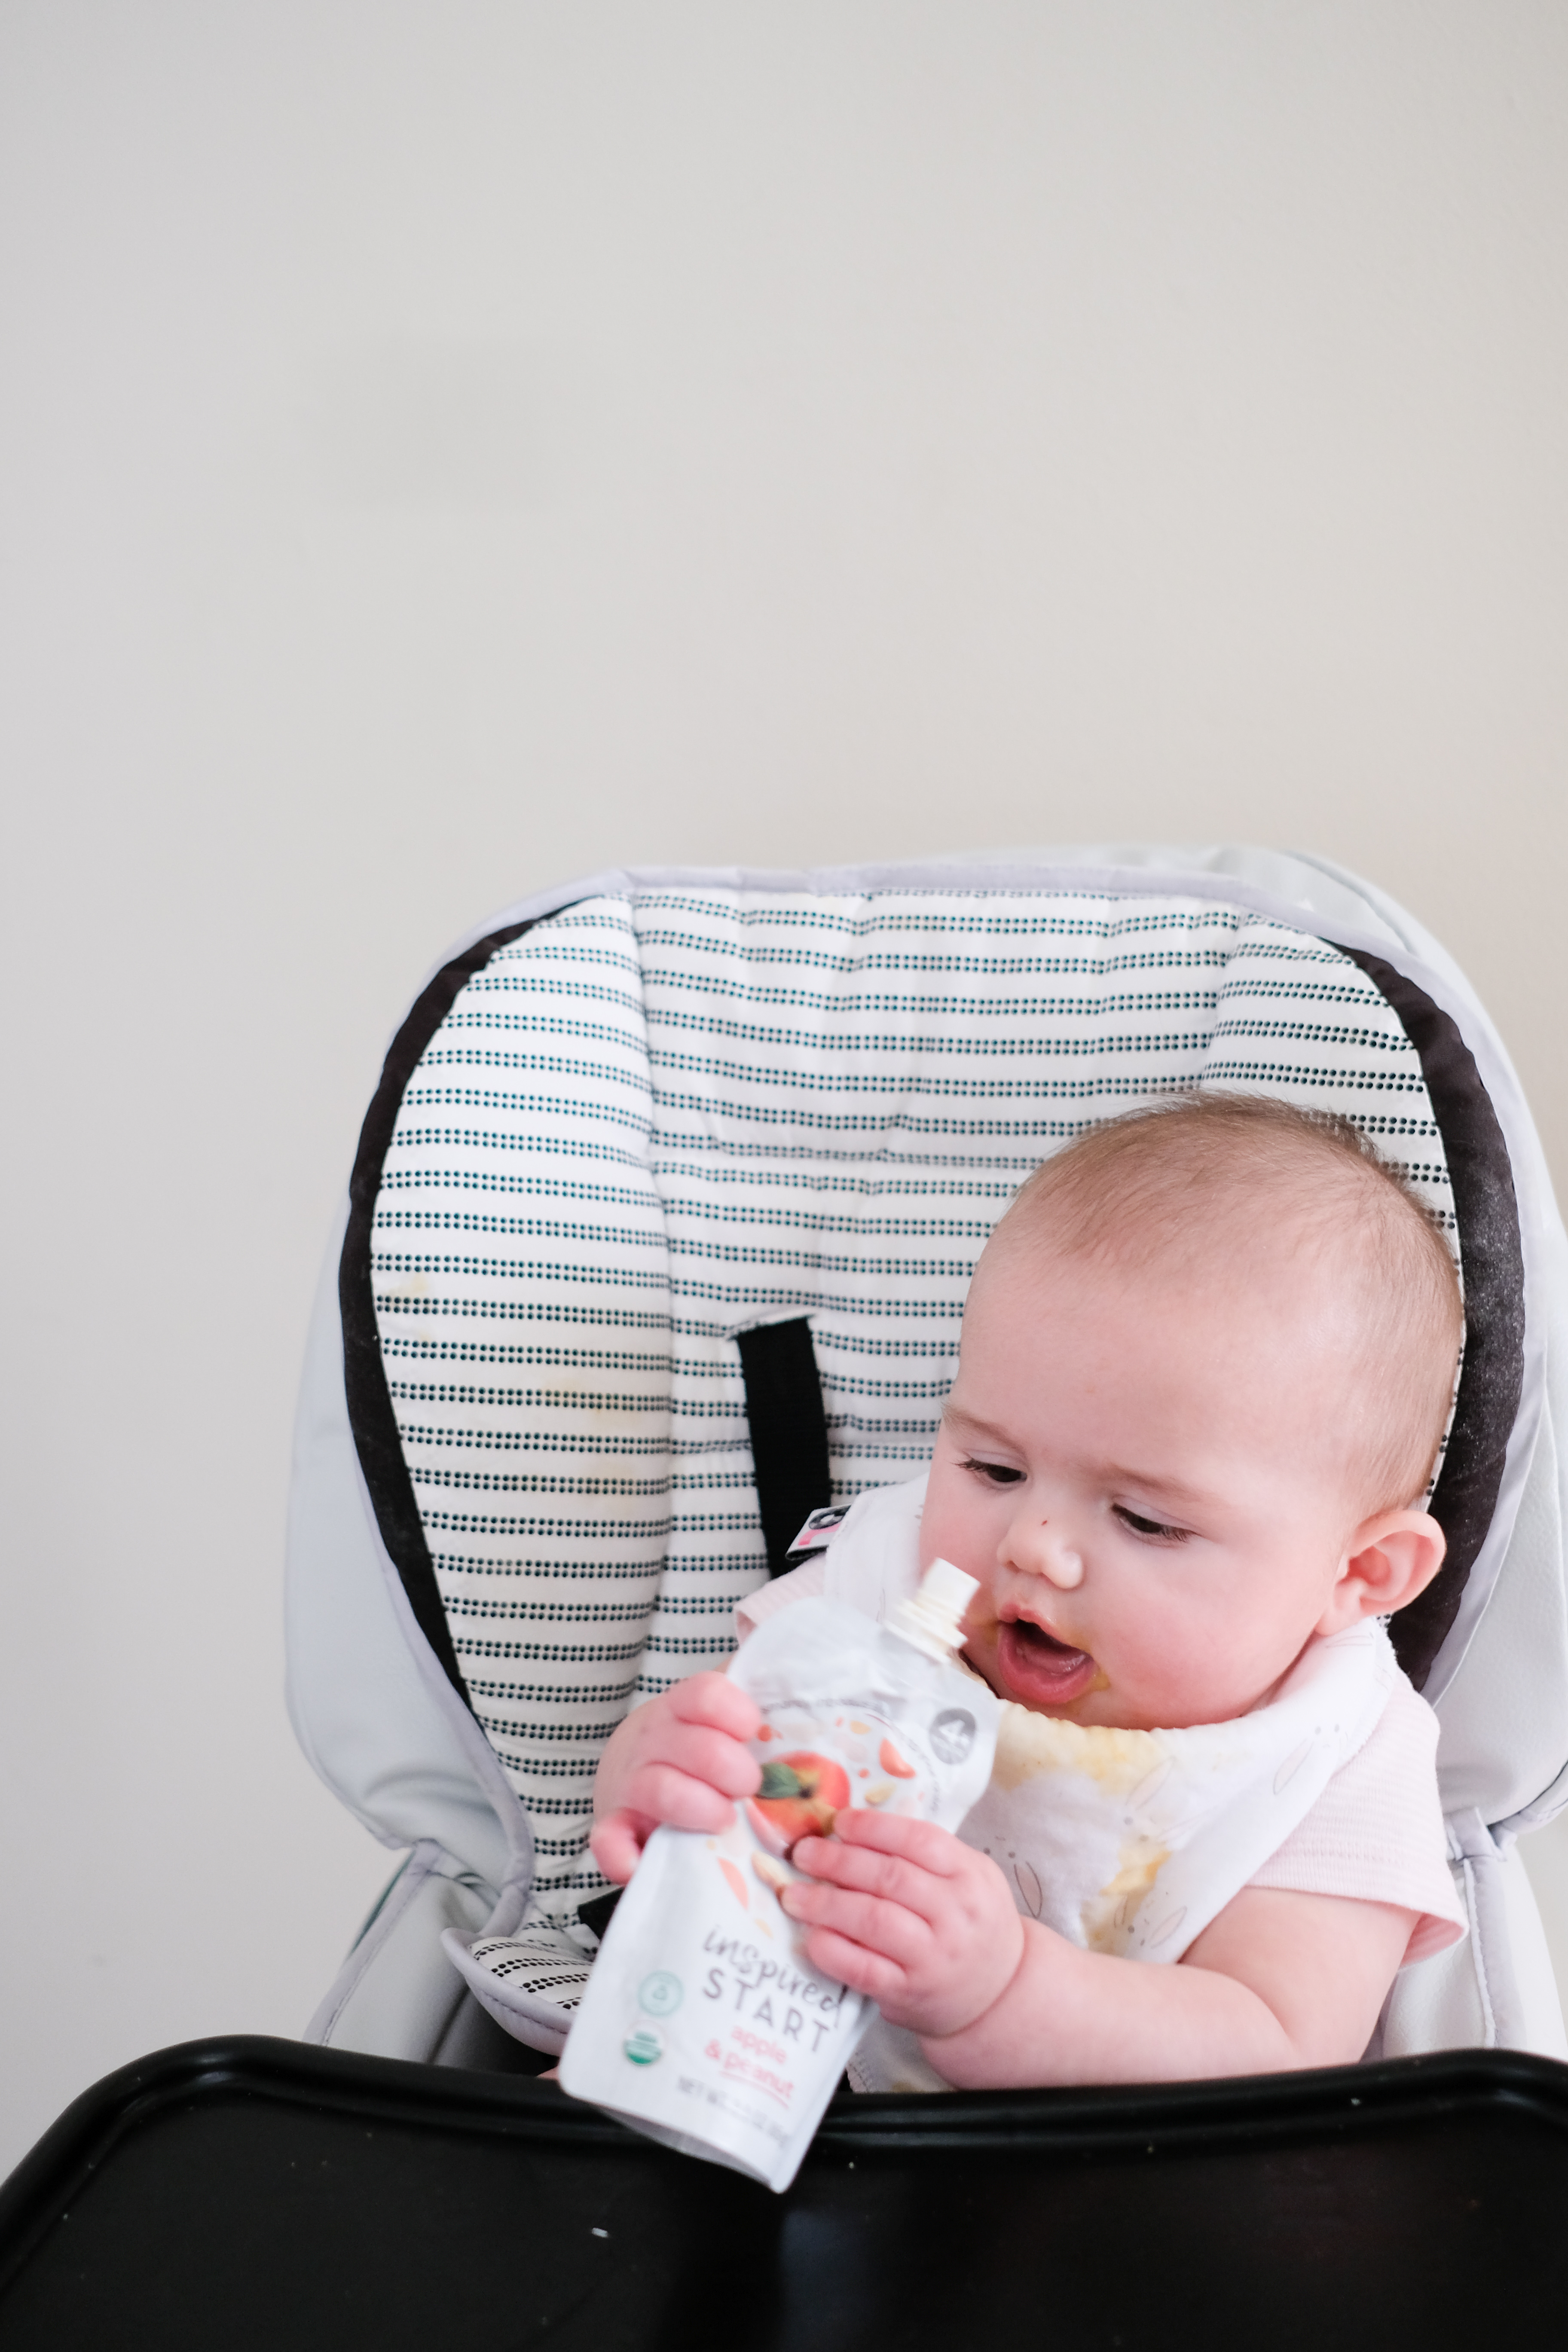 Lifestyle Blogger Chocolate & Lace shares how she is introducing early allergens to her baby with Inspired Start.